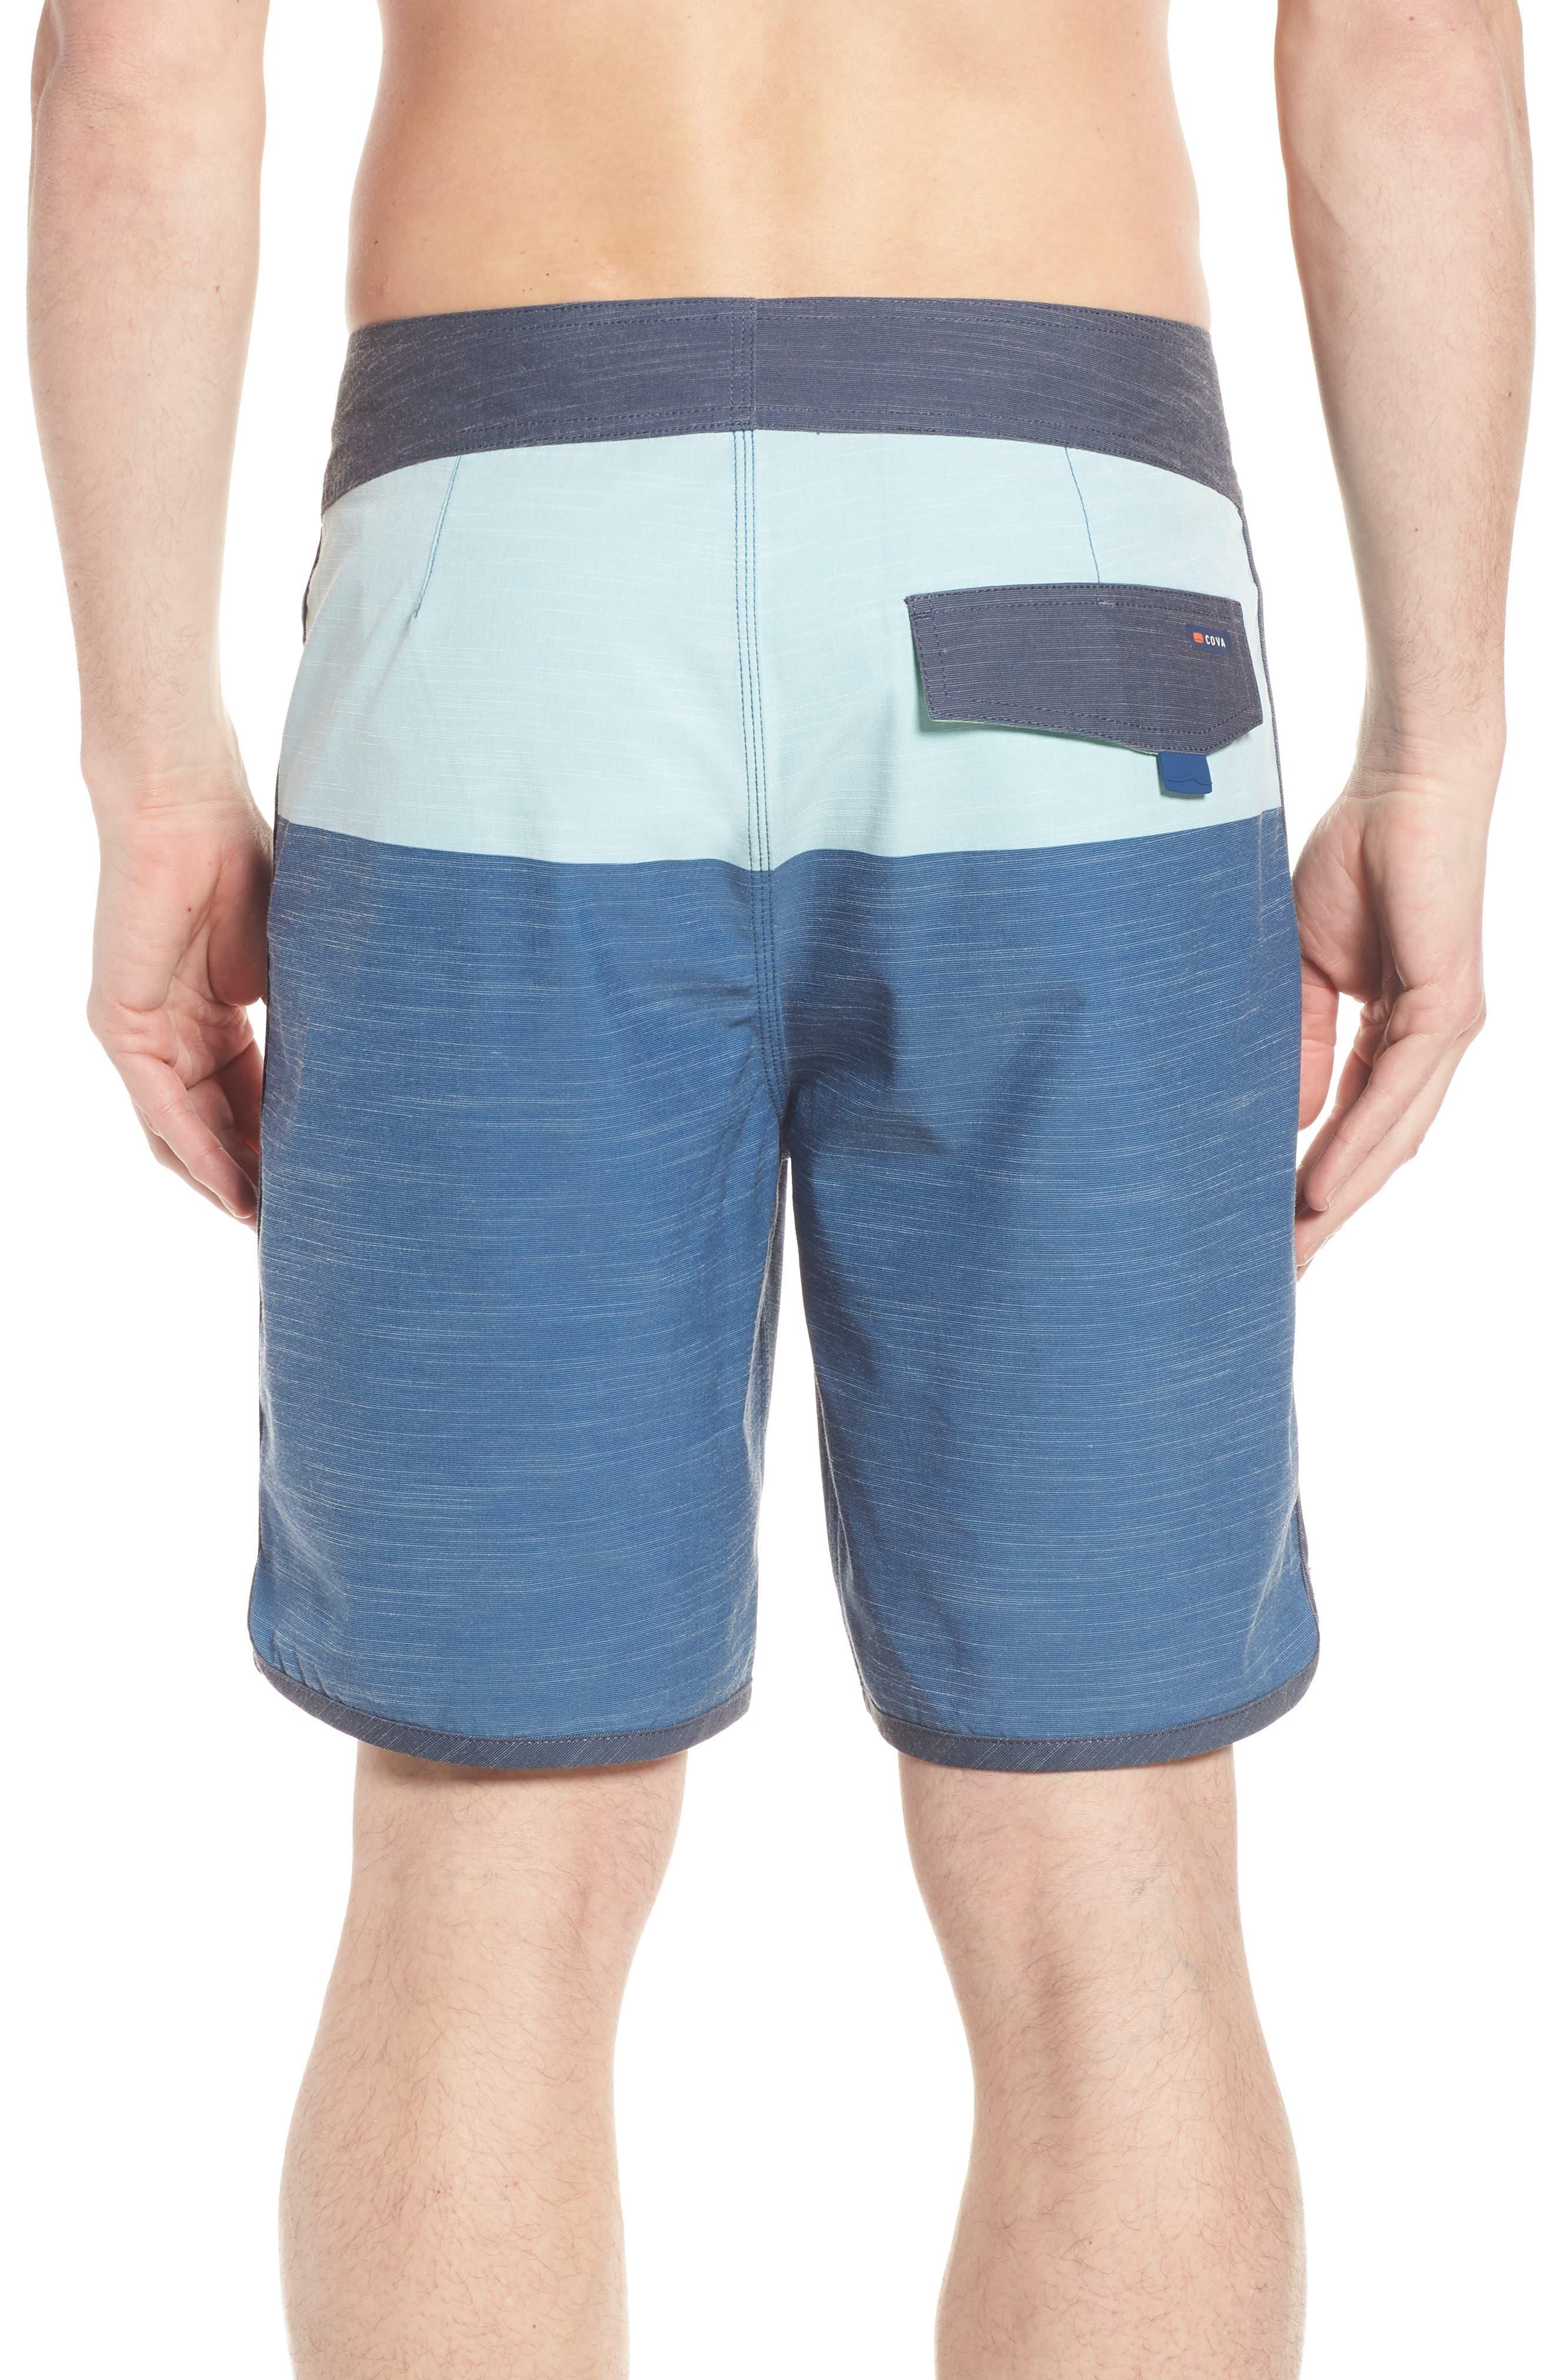 Beachcomber Board Shorts,                             Alternate thumbnail 2, color,                             Ocean Blue